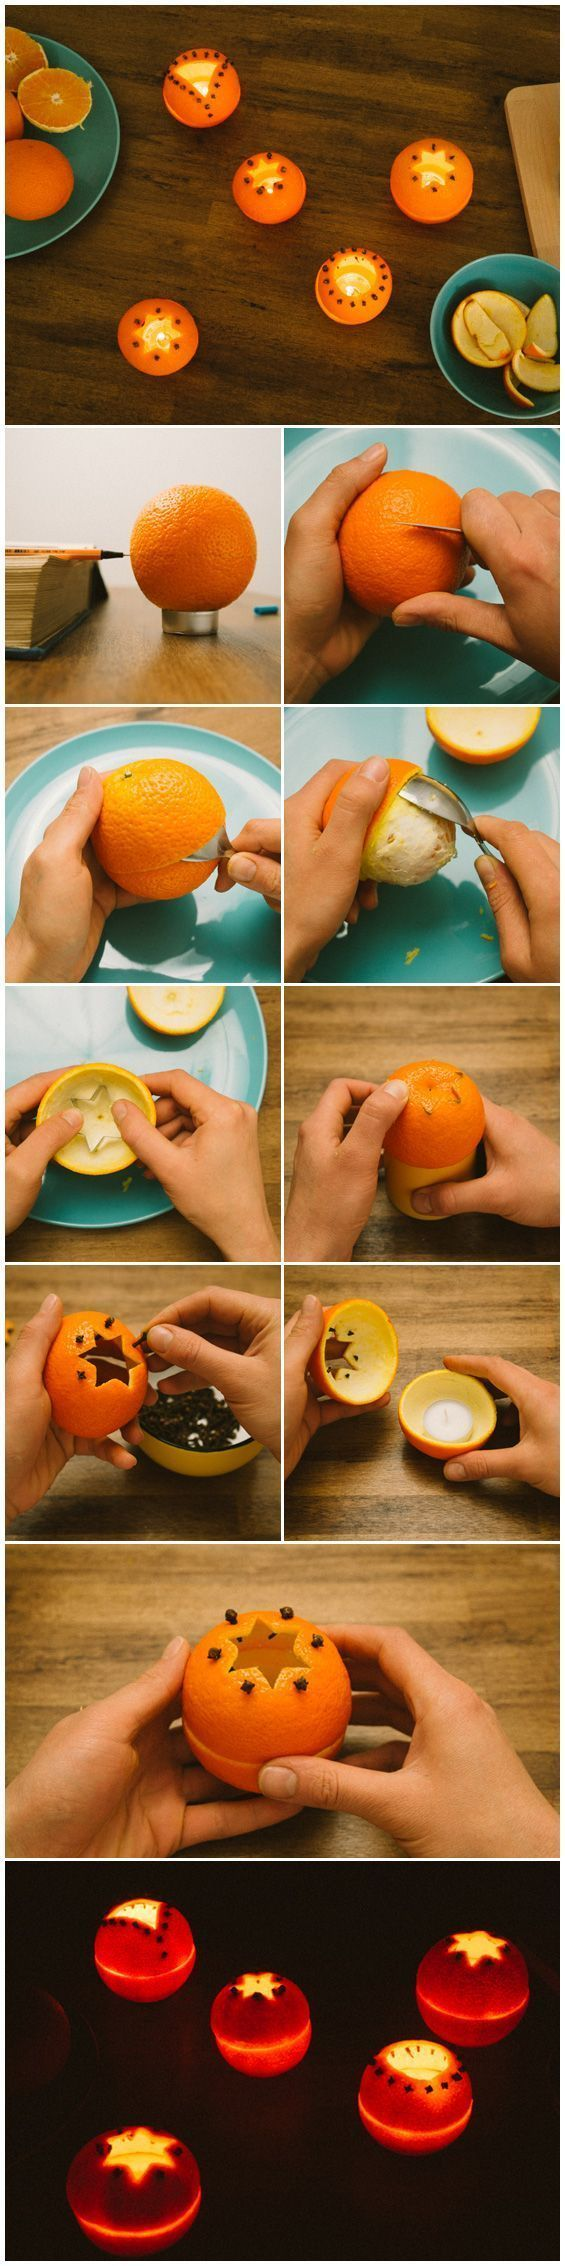 Christmas decorations you can make yourself - Christmas Diy 25 Gorgeous Christmas Decorations You Can Make Yourself Orange Candles